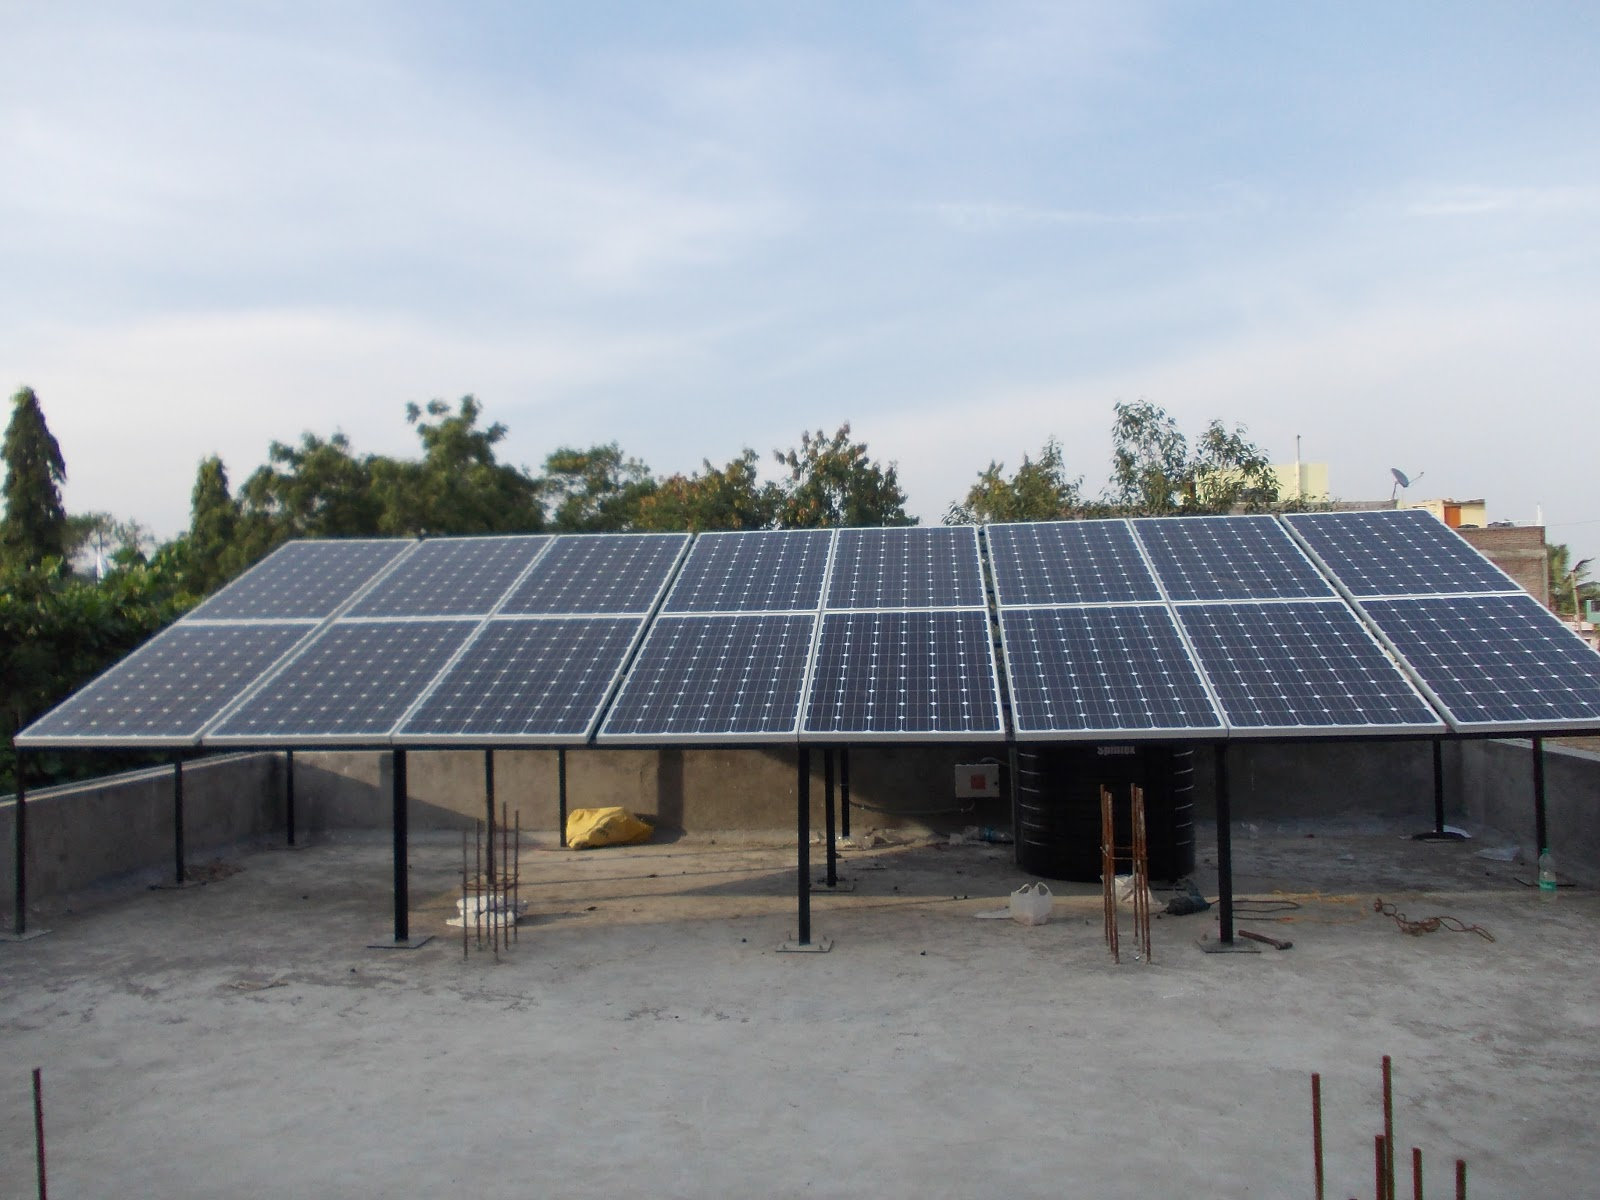 Tamil Nadu launches rooftop Solar power projects